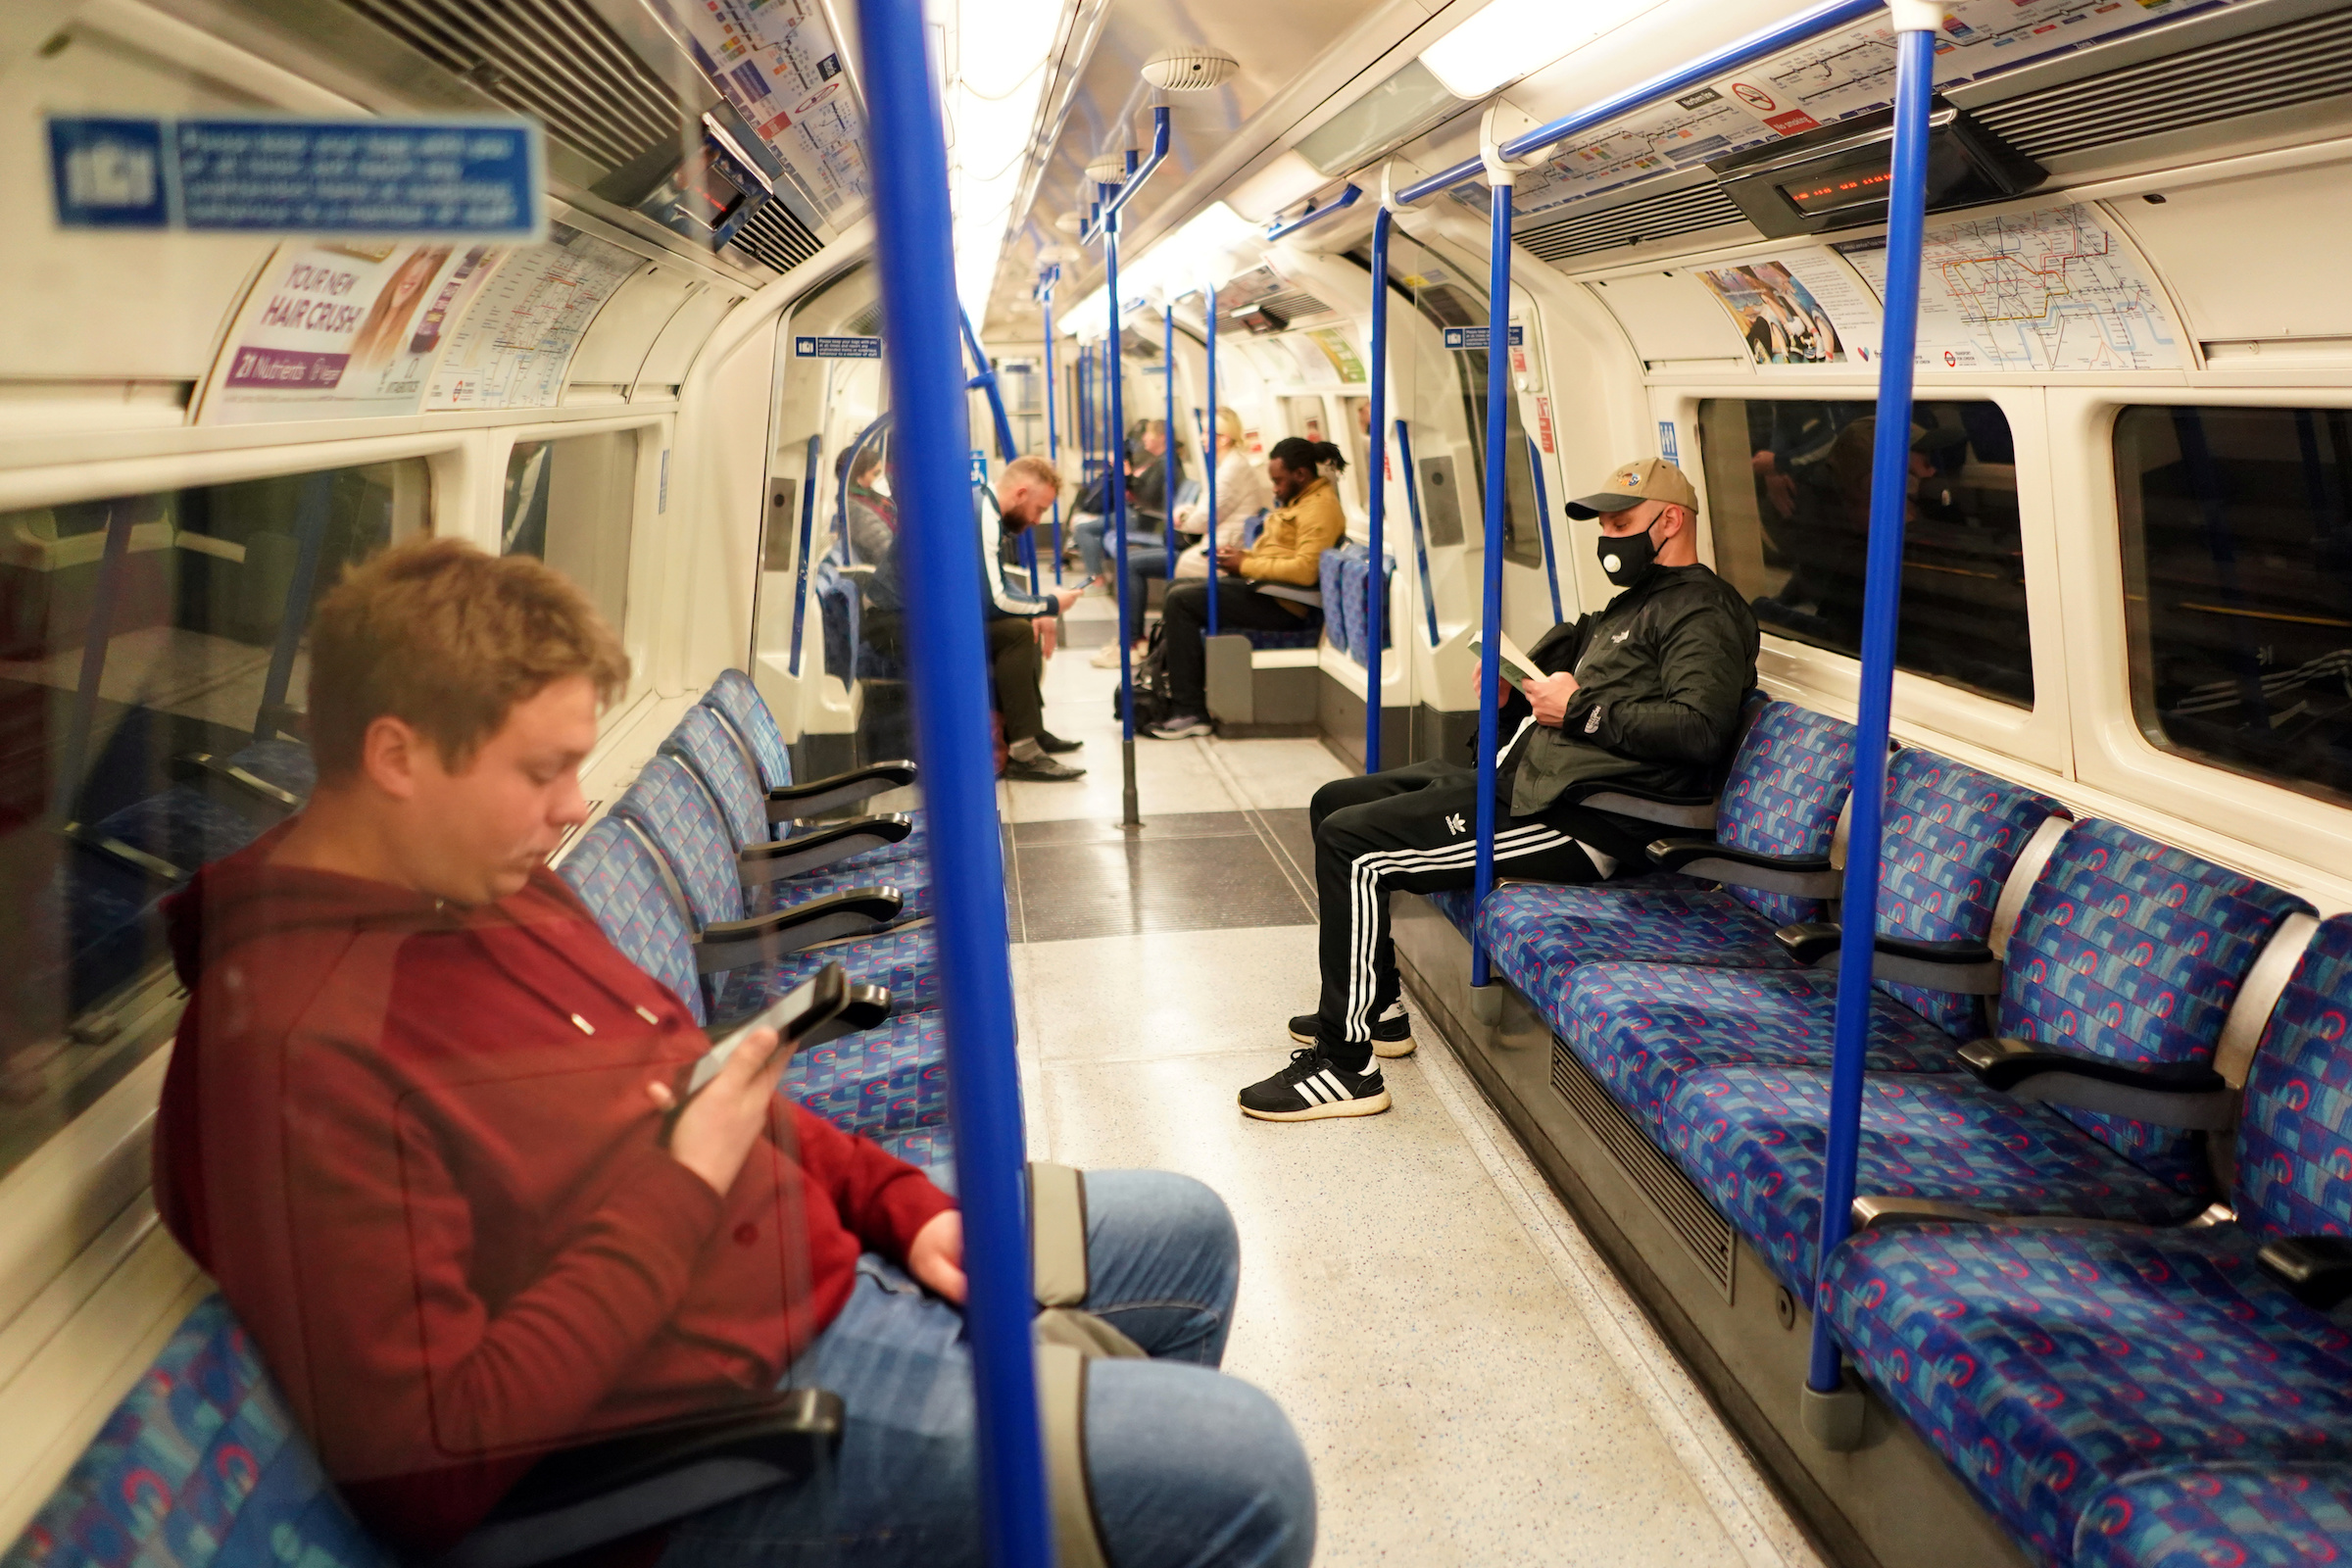 People on a London Tube